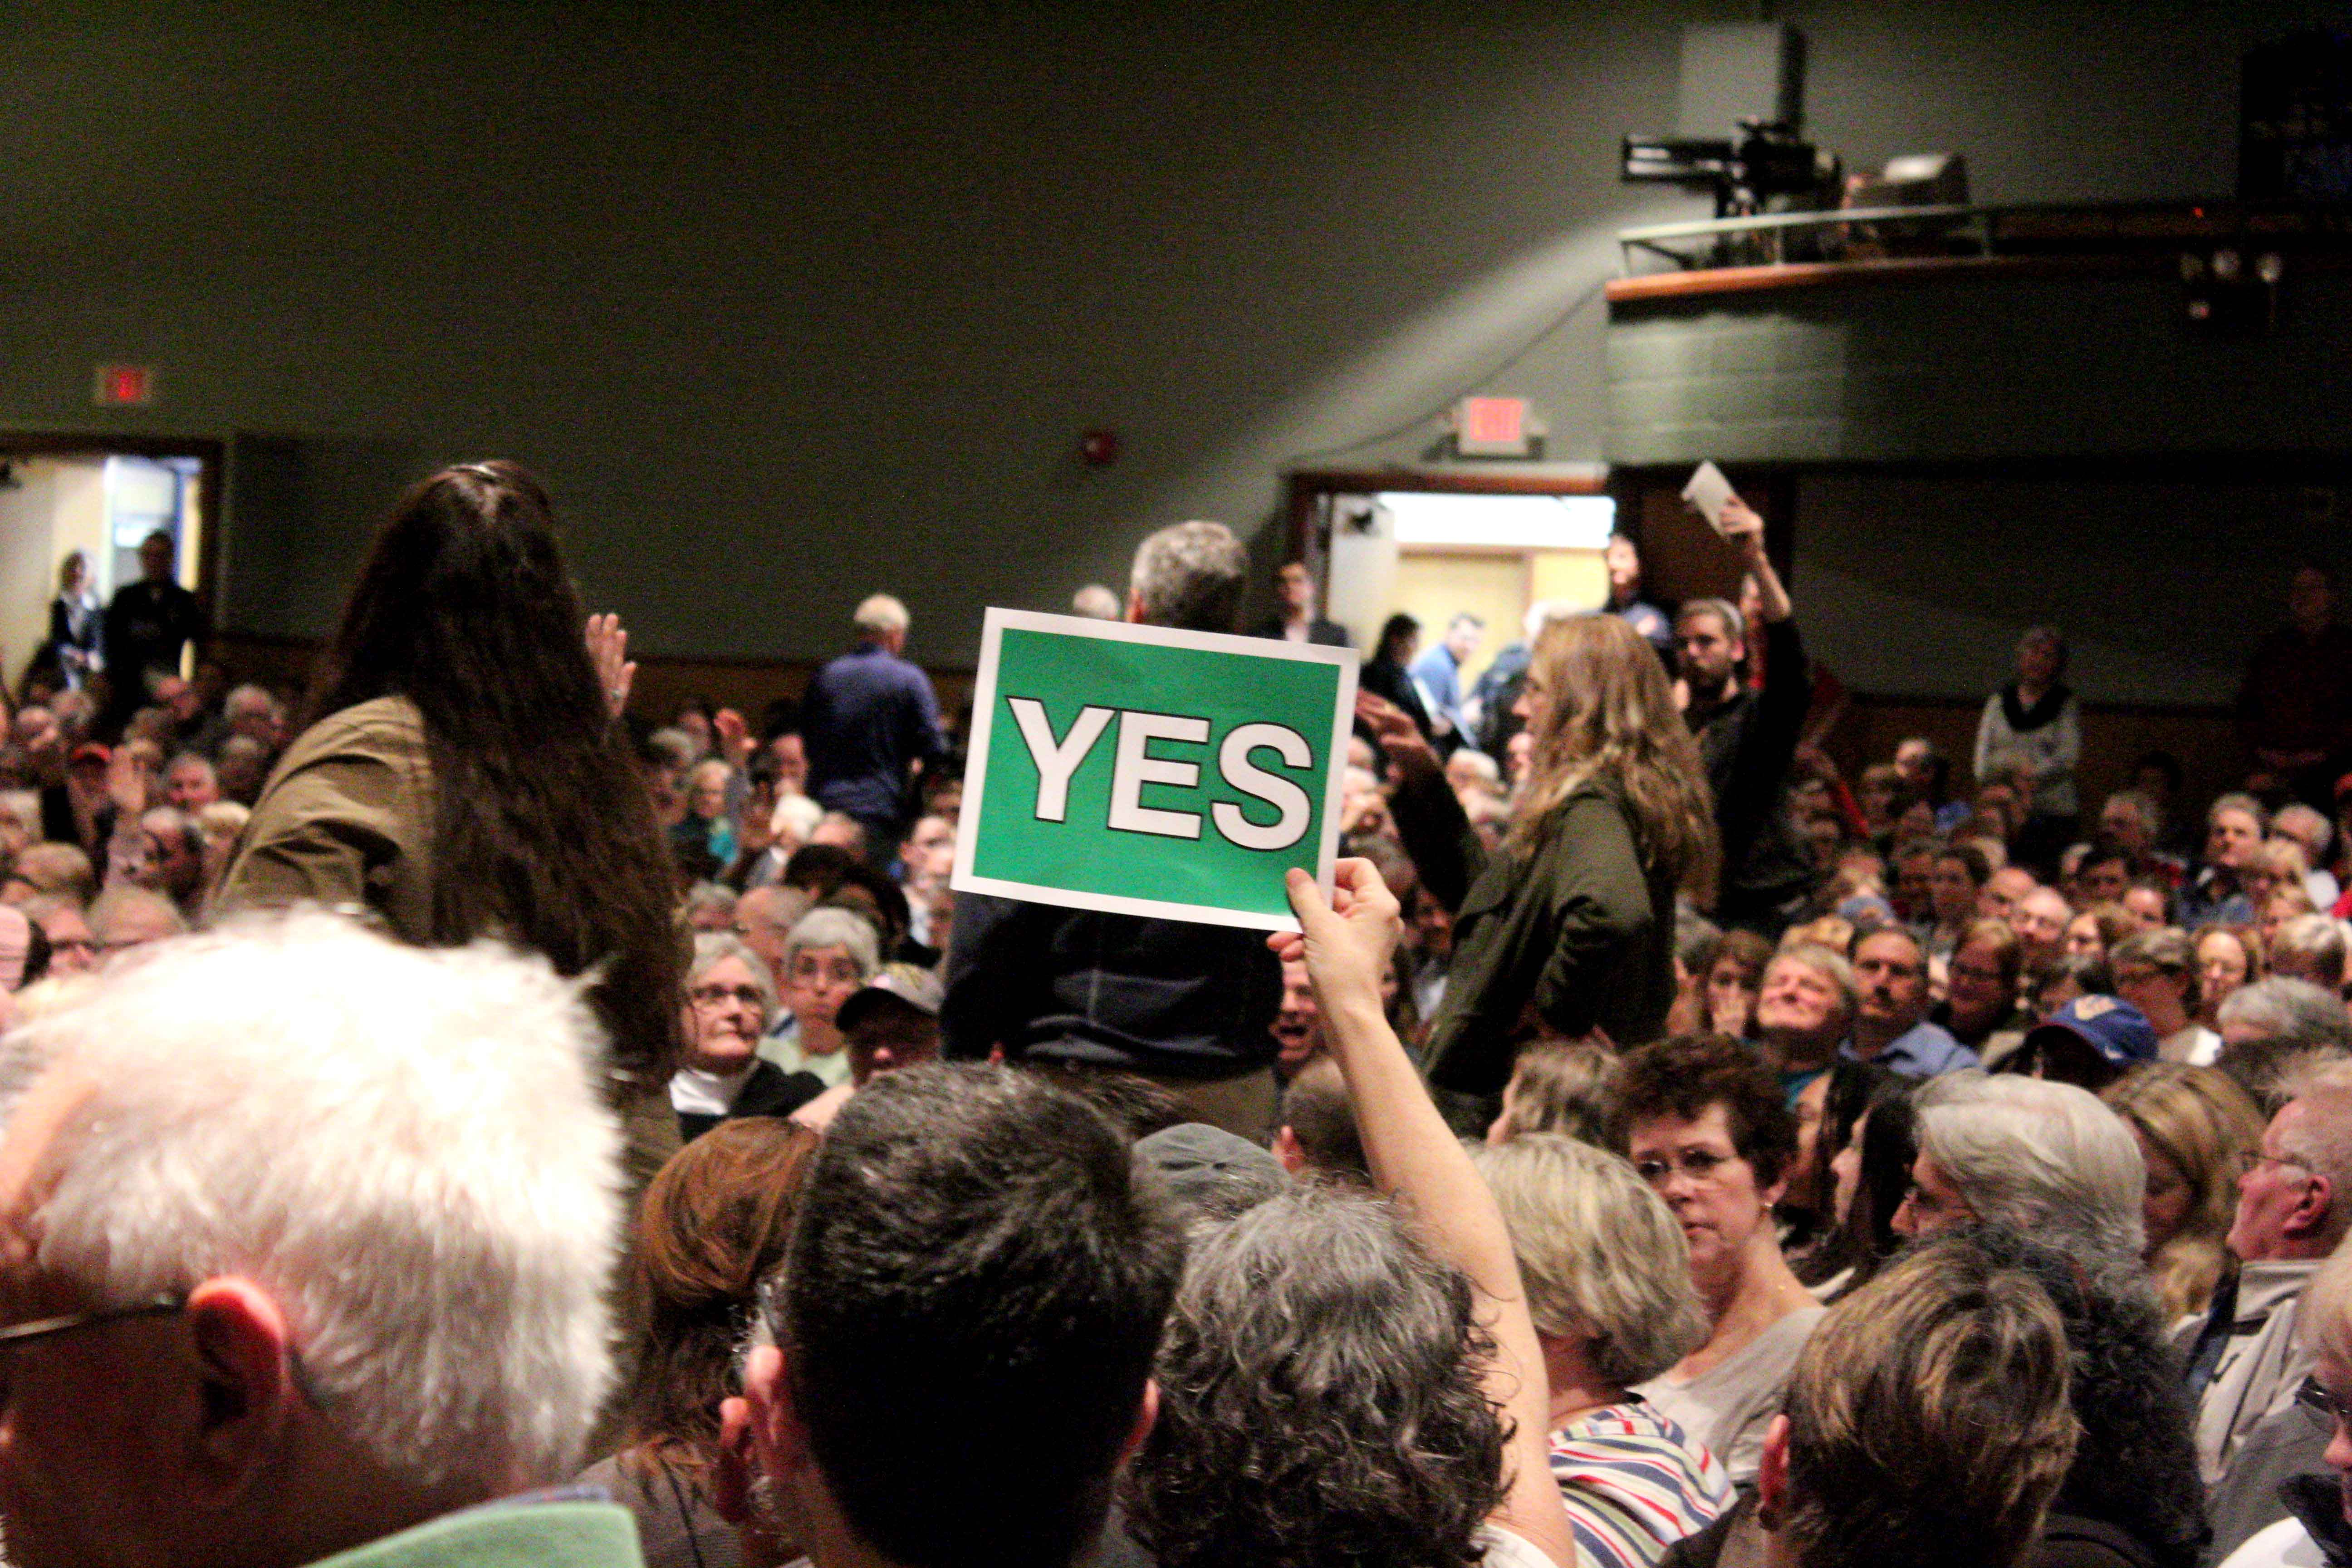 A crowd member holds up a sign that reads